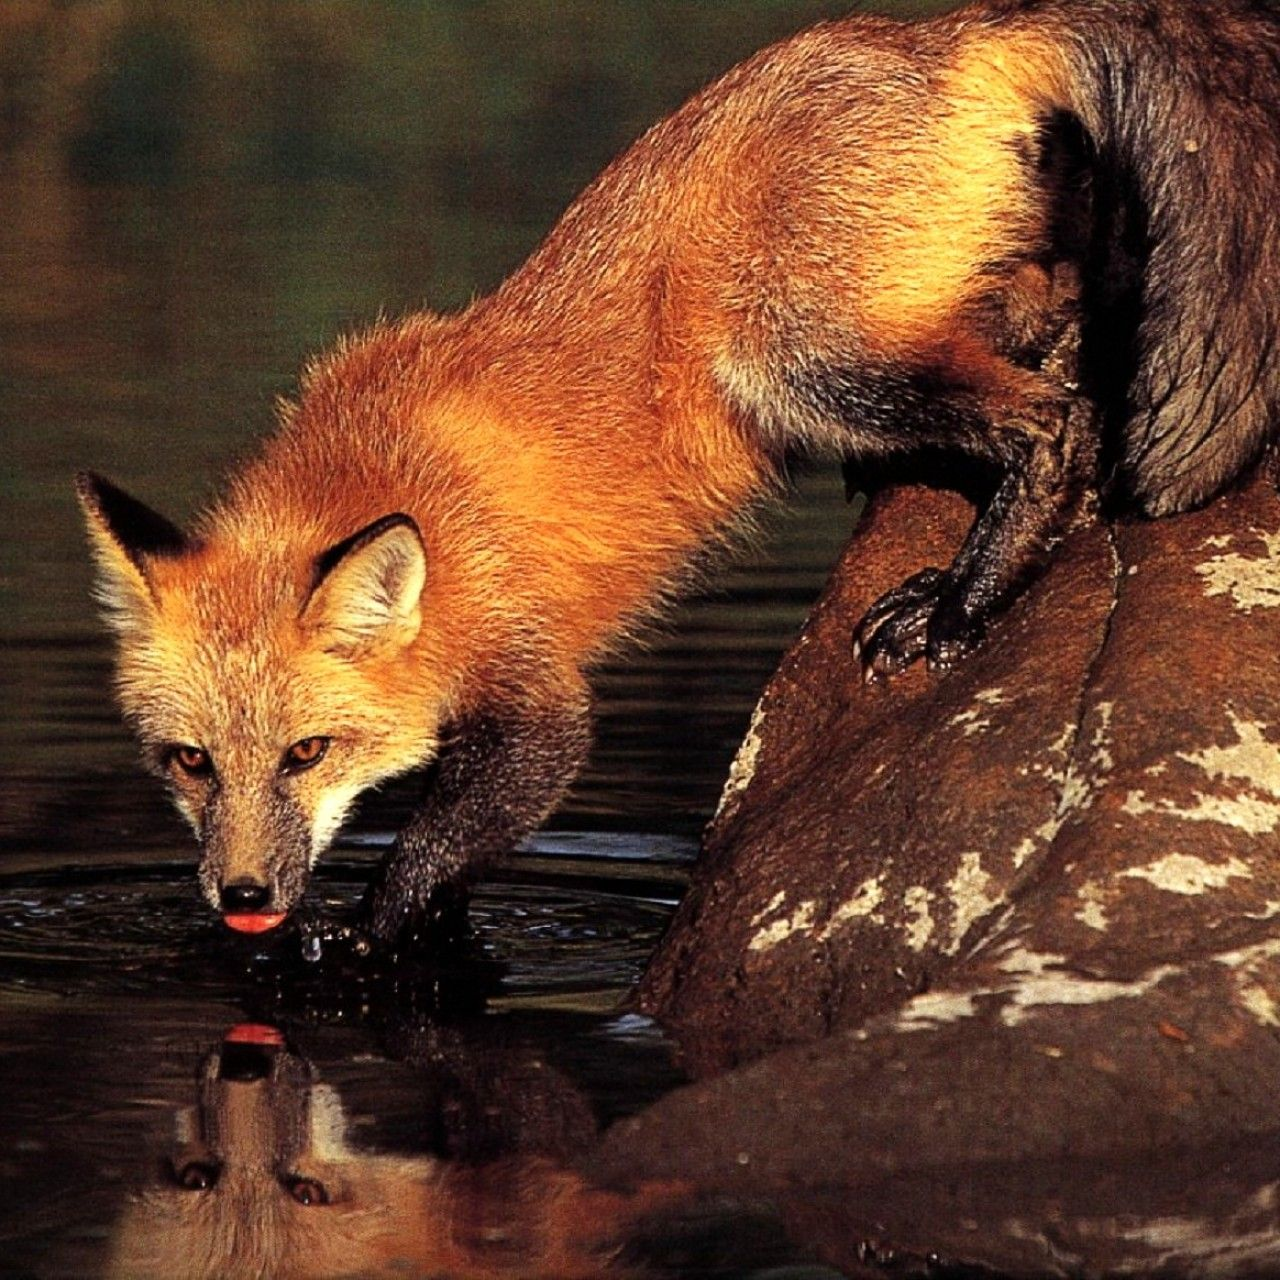 fox at the water | Red fox water mirror - Wallpapers bah